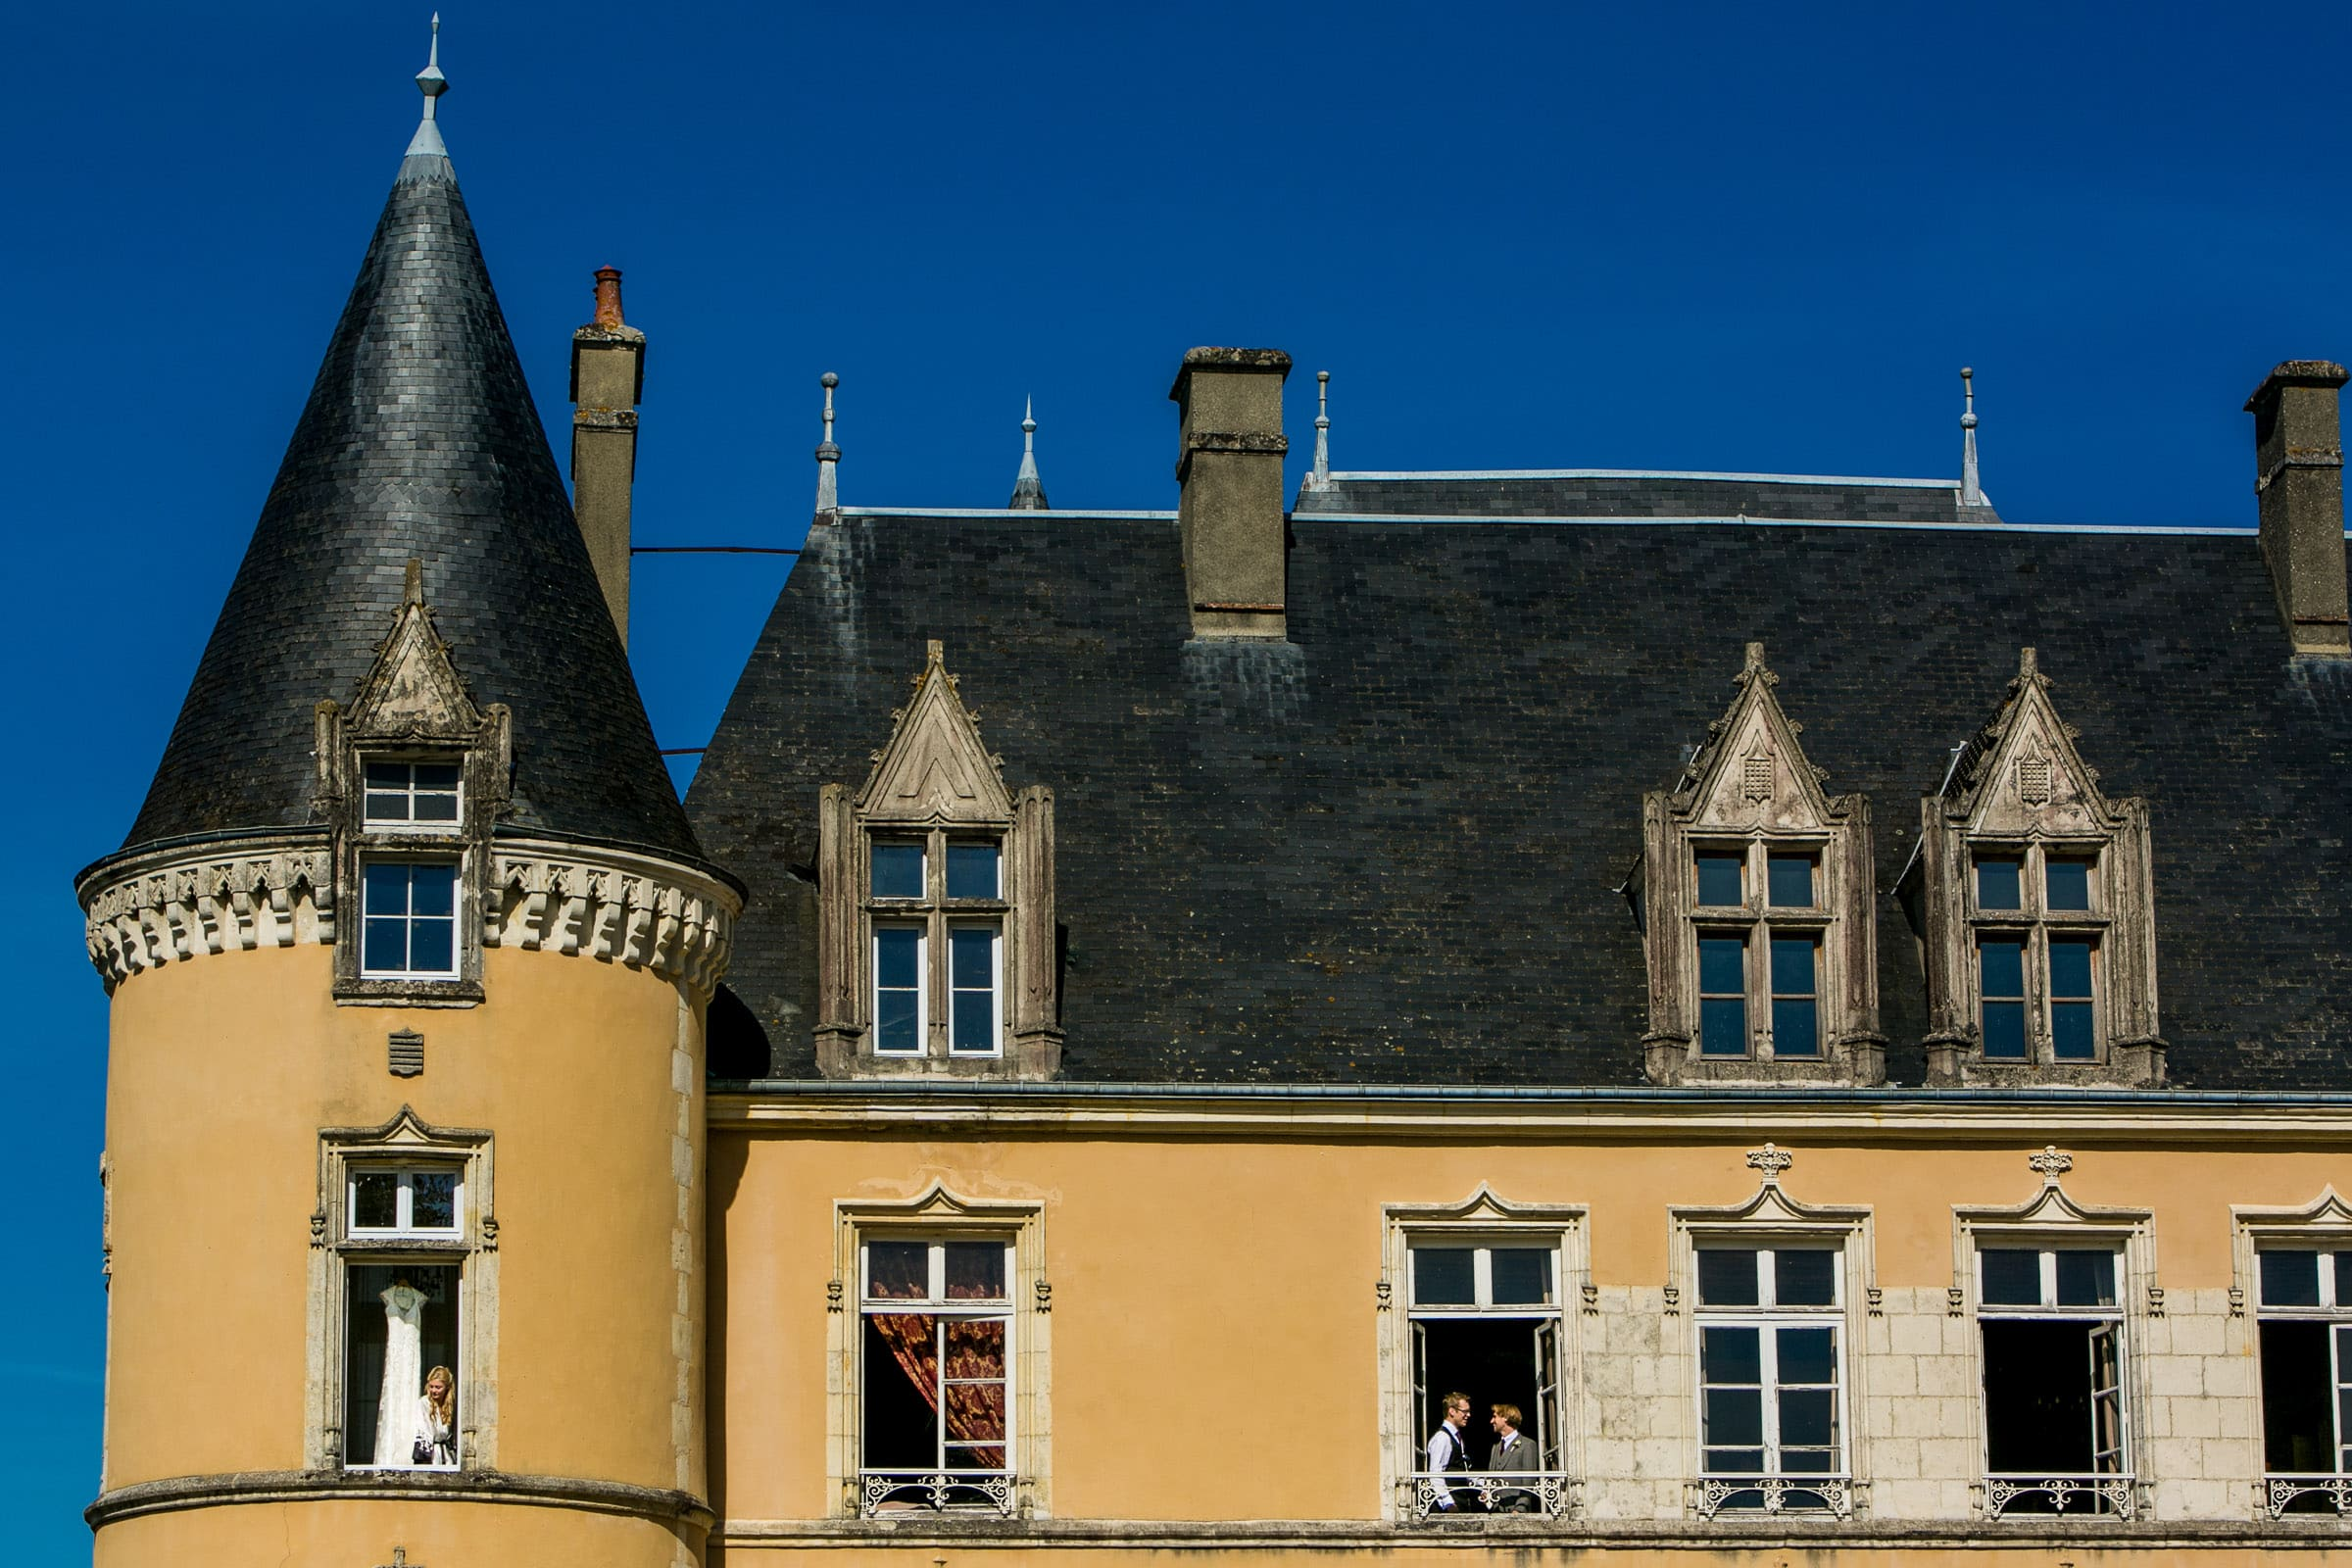 Bride and groom getting ready through windows during their French Chateau wedding in Normandy, France